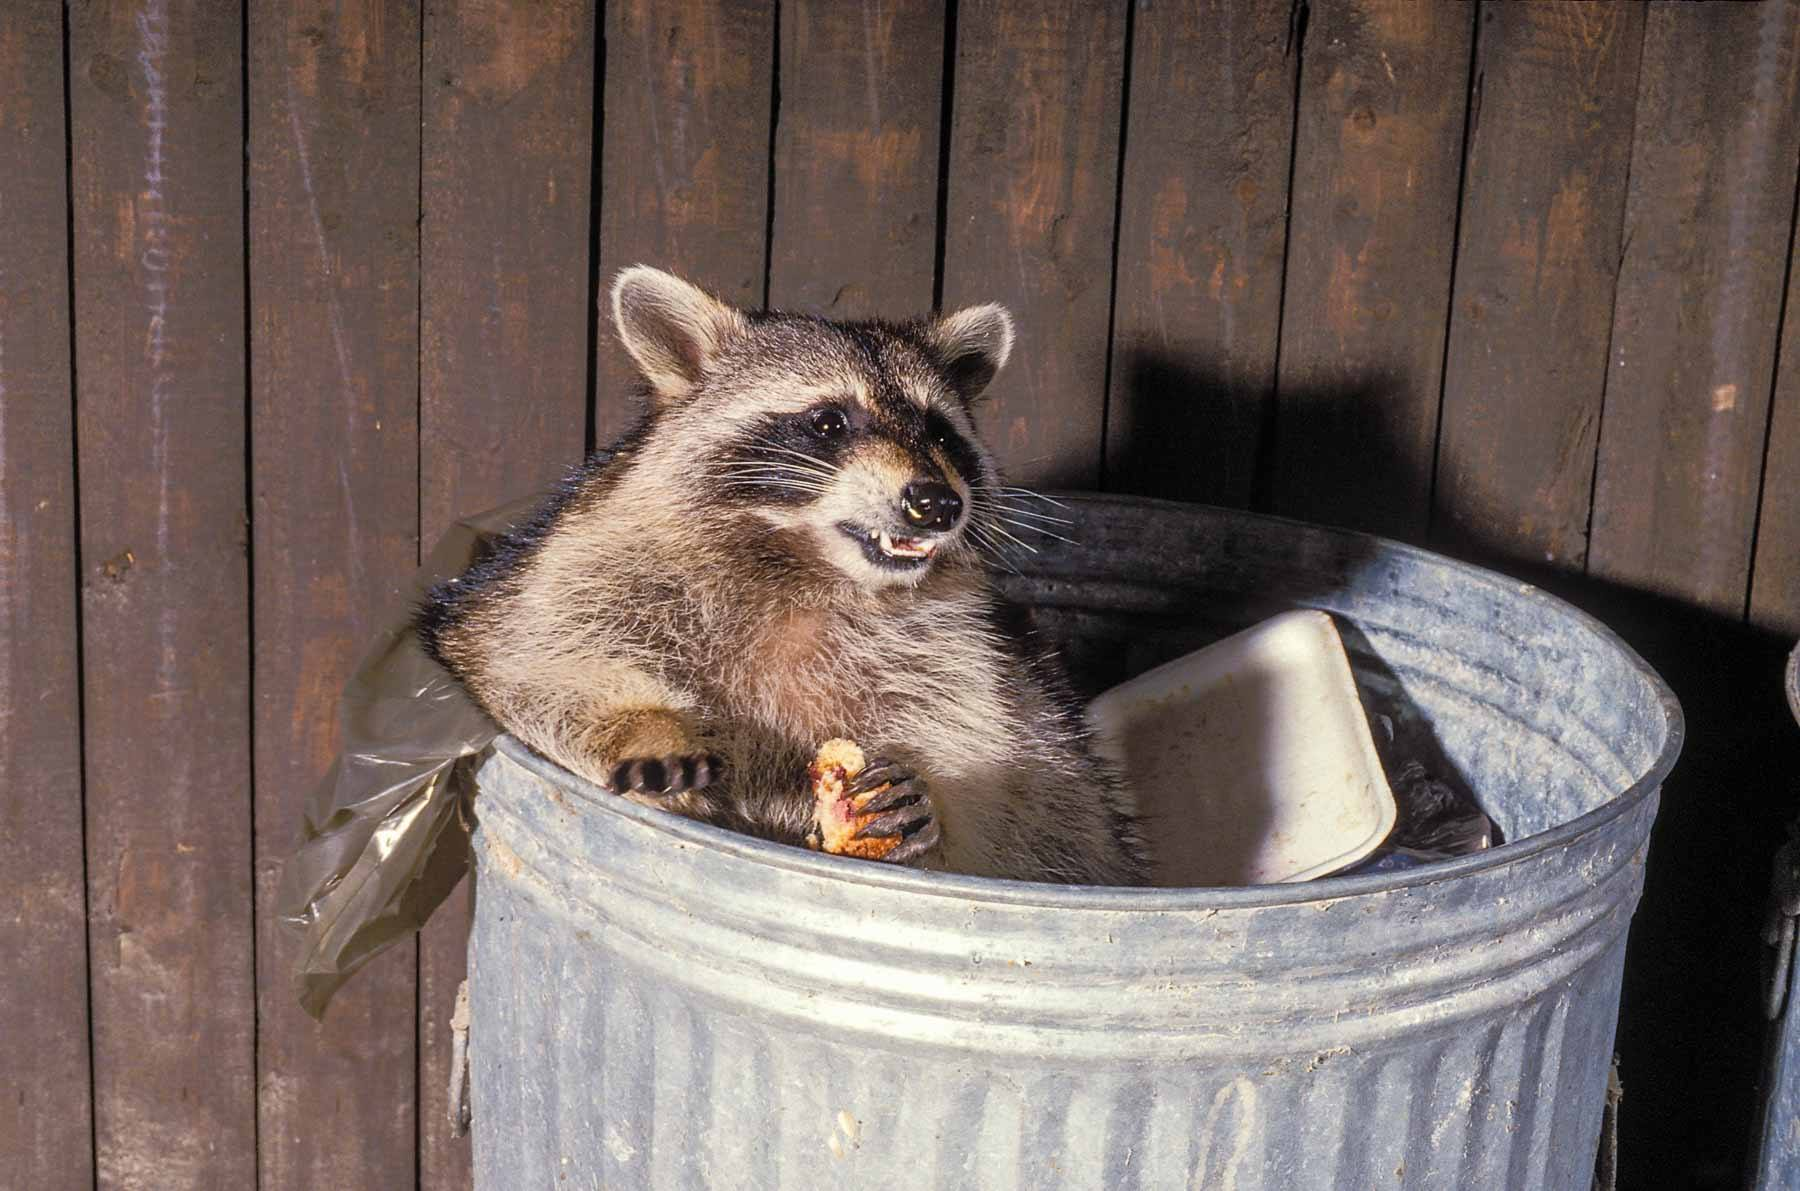 Racoons become a metaphor for eating well during Covid-19 depression (May 2020)